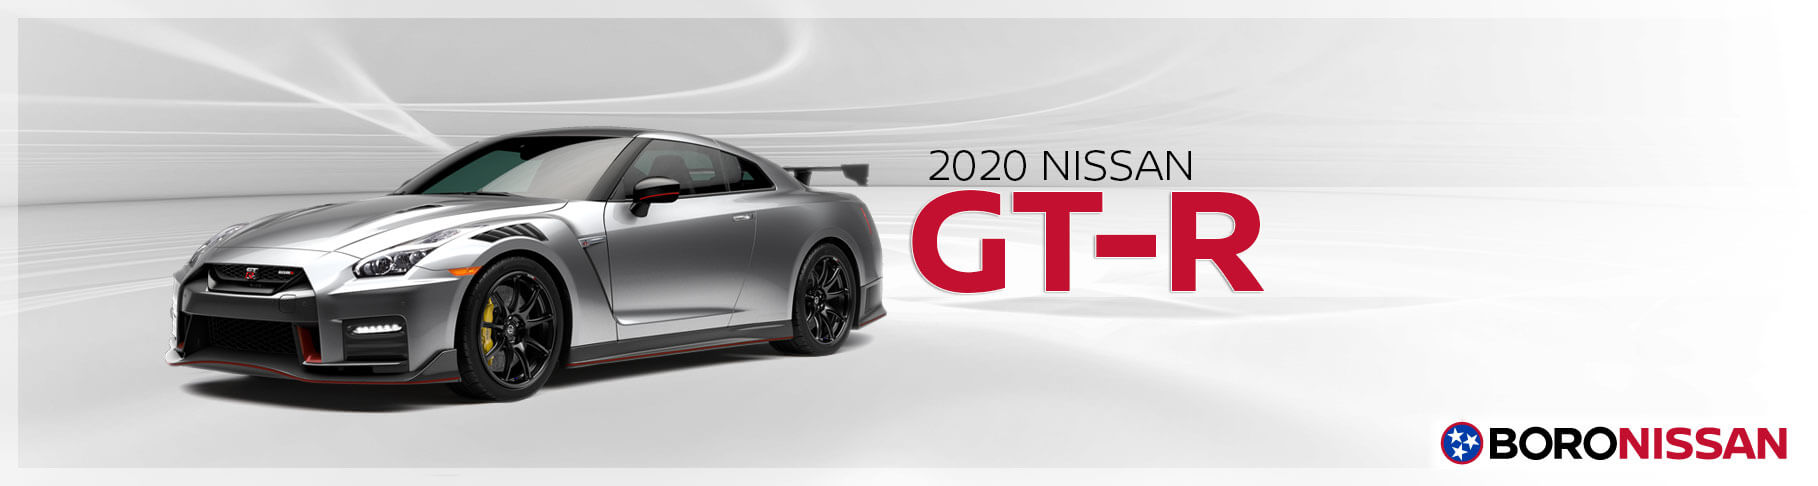 The New 2020 Nissan GT-R At Our Dealership In Murfreesboro